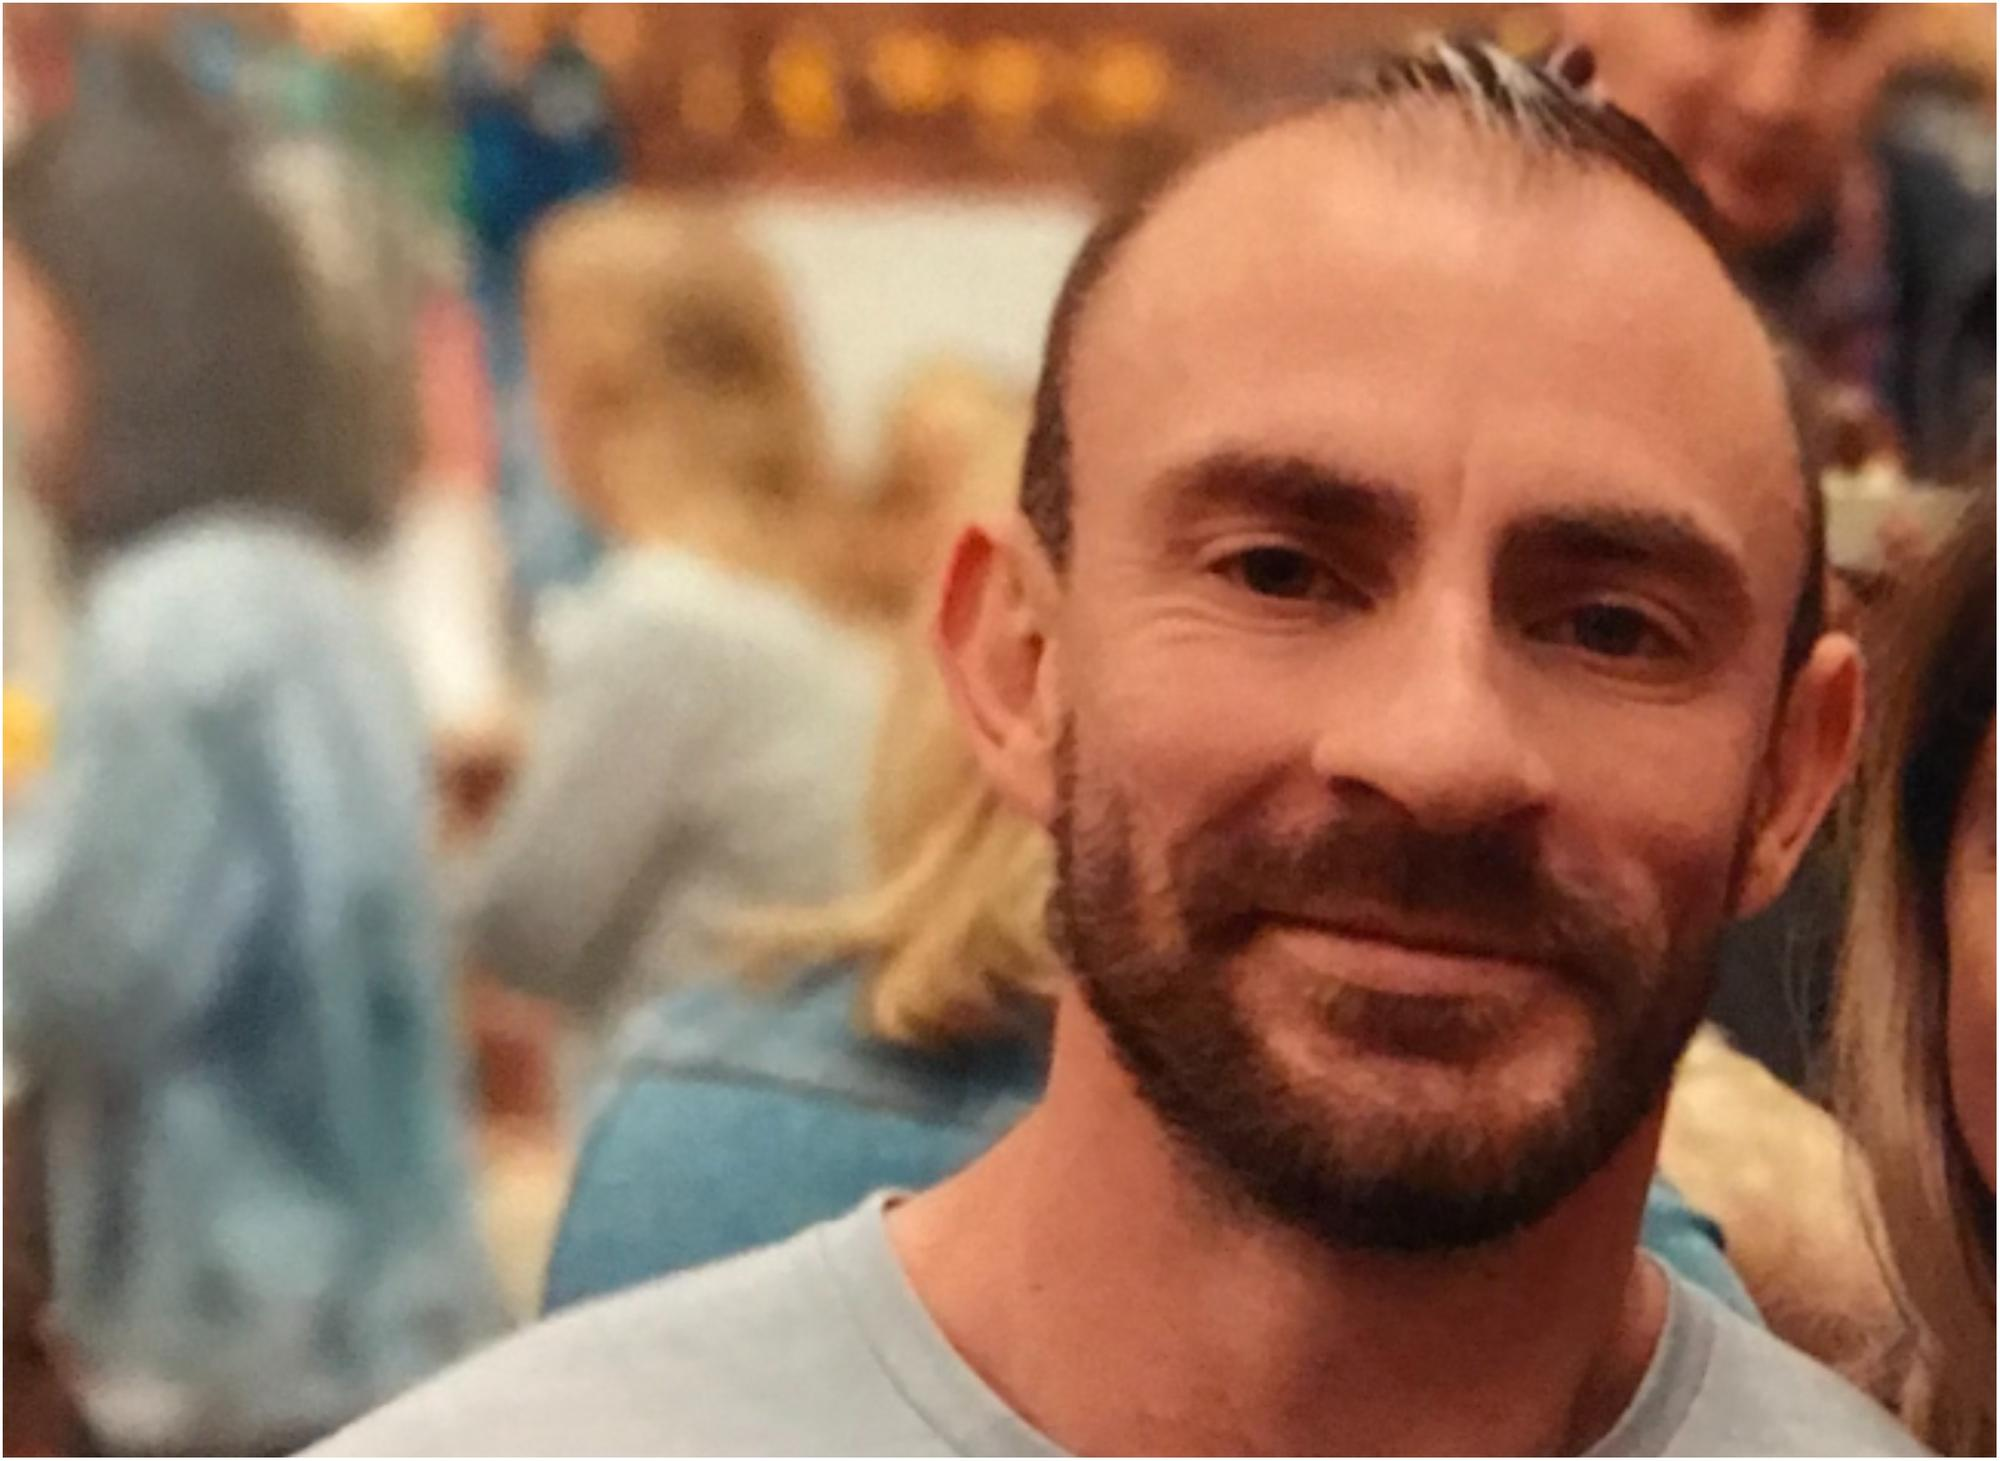 Missing man last seen in Rotherham village found safe and well after search